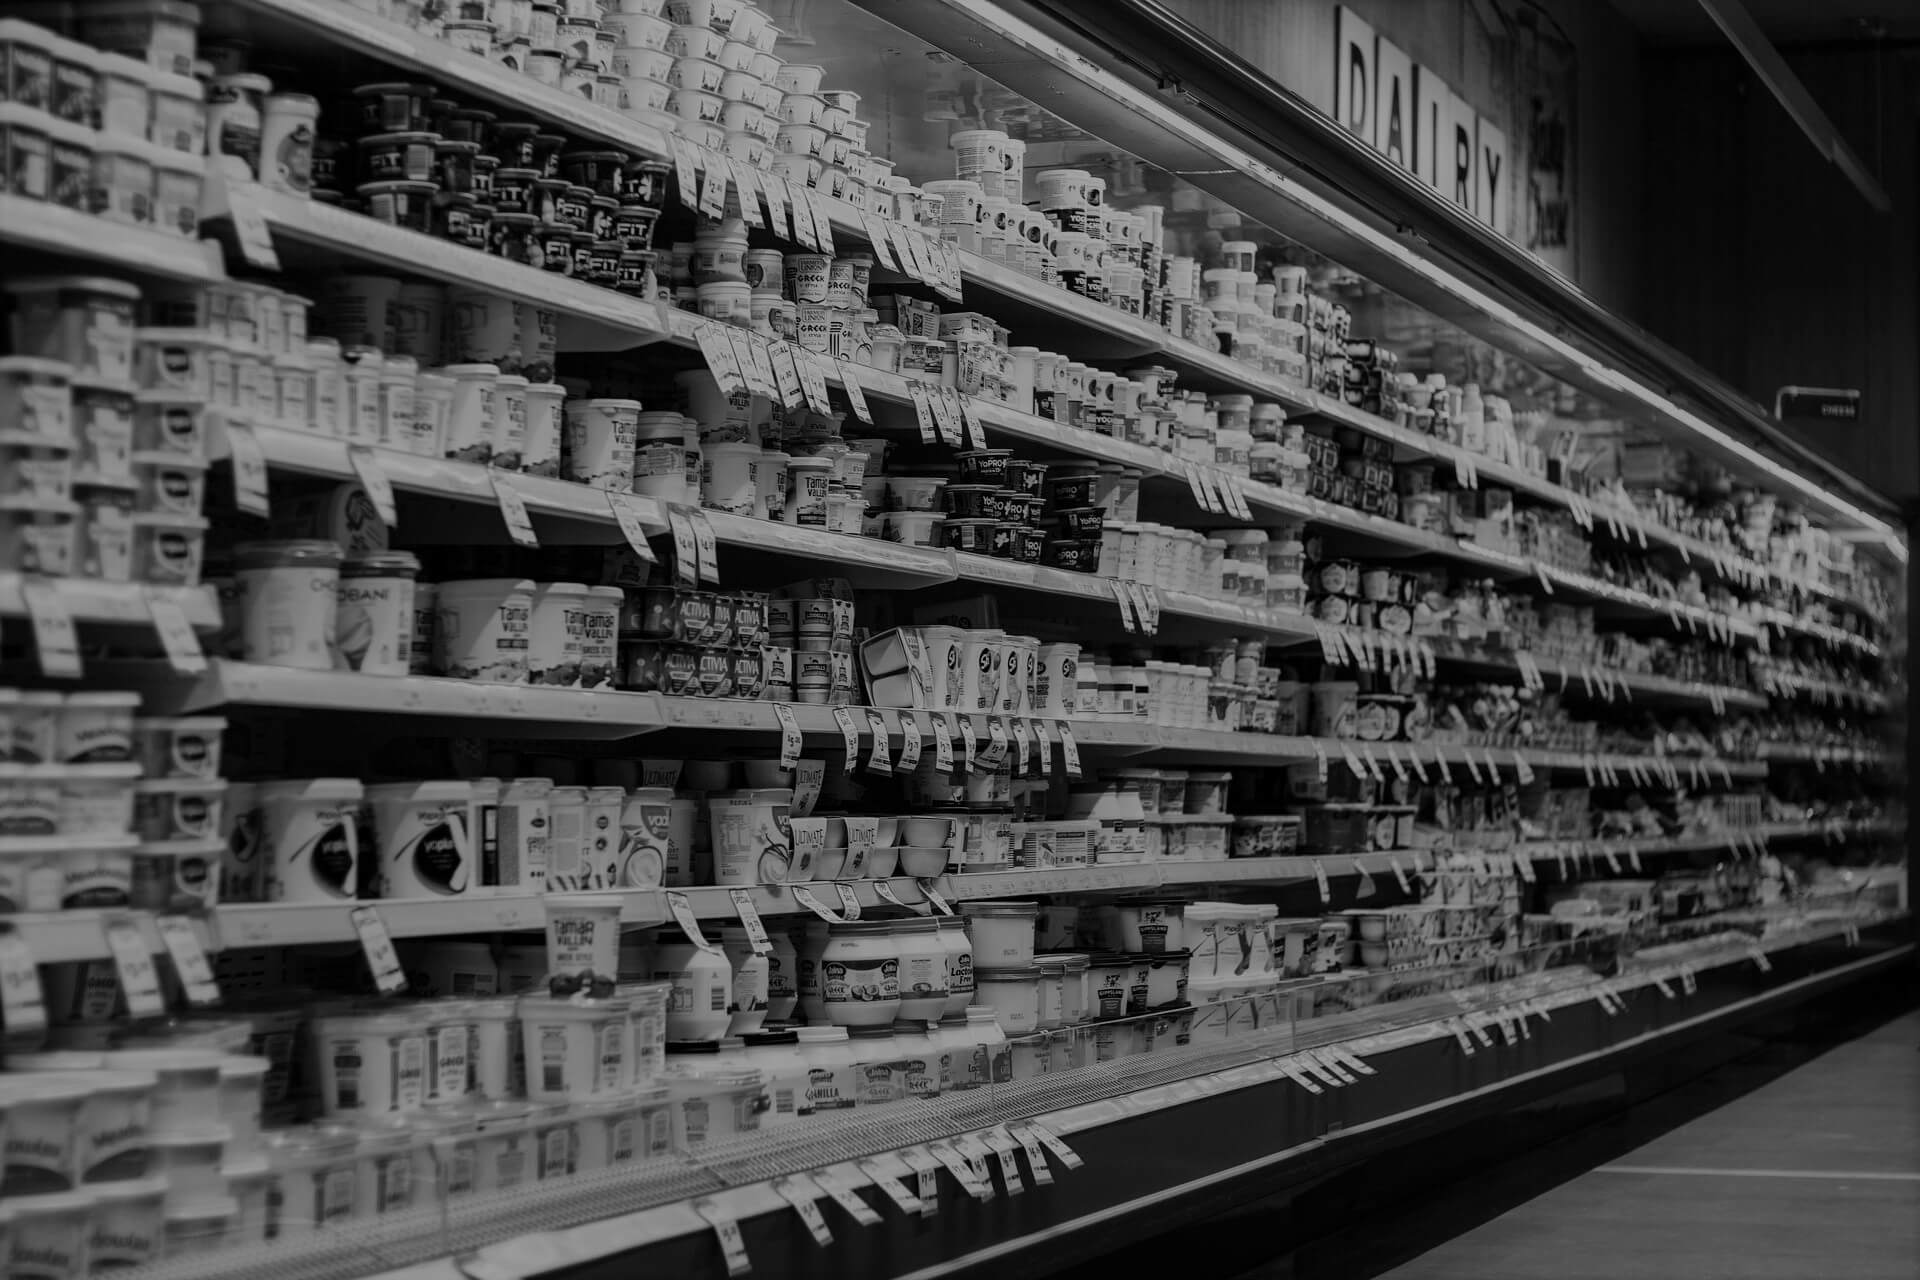 COVID-19's Impact on Retail Grocery